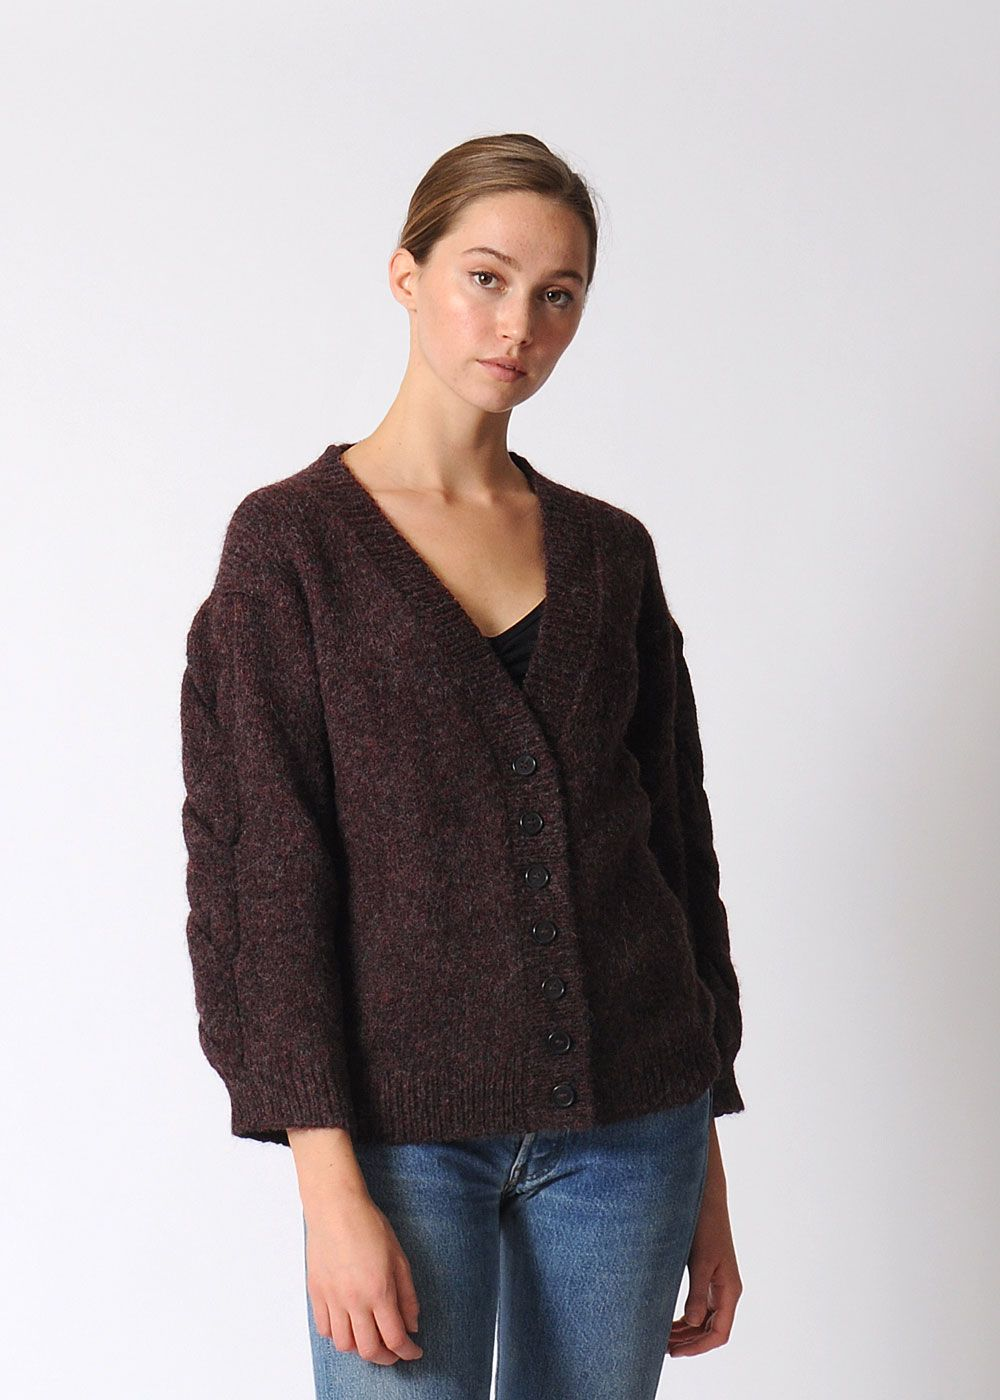 Micaela Greg Twist Cardigan | Chunky cardigan, Alpacas and Cable